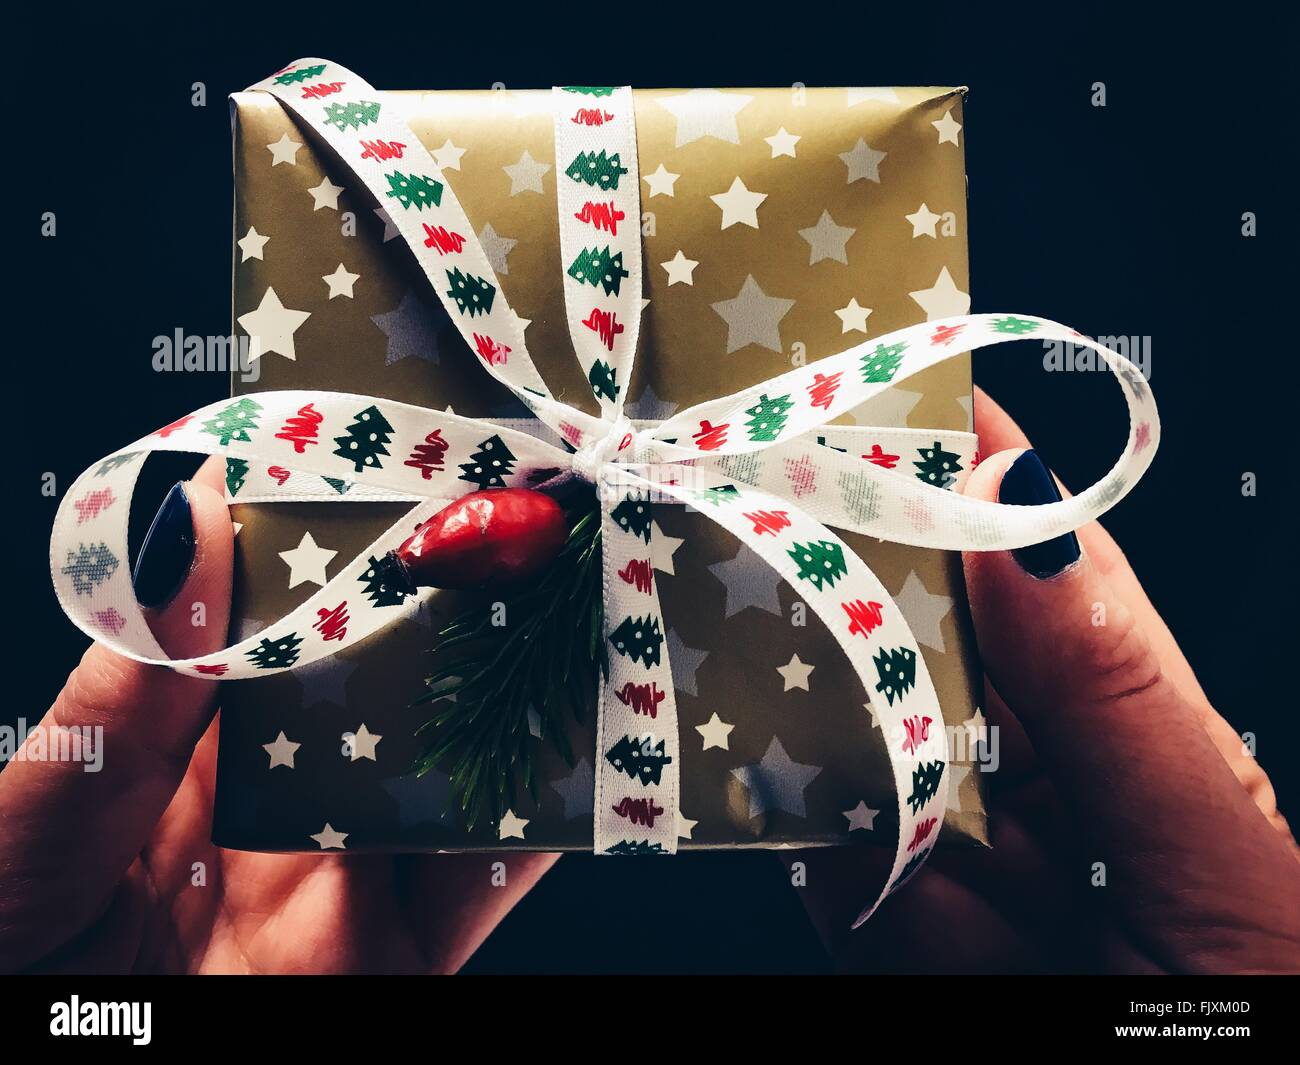 Close-Up Of Hands Holding Gift - Stock Image